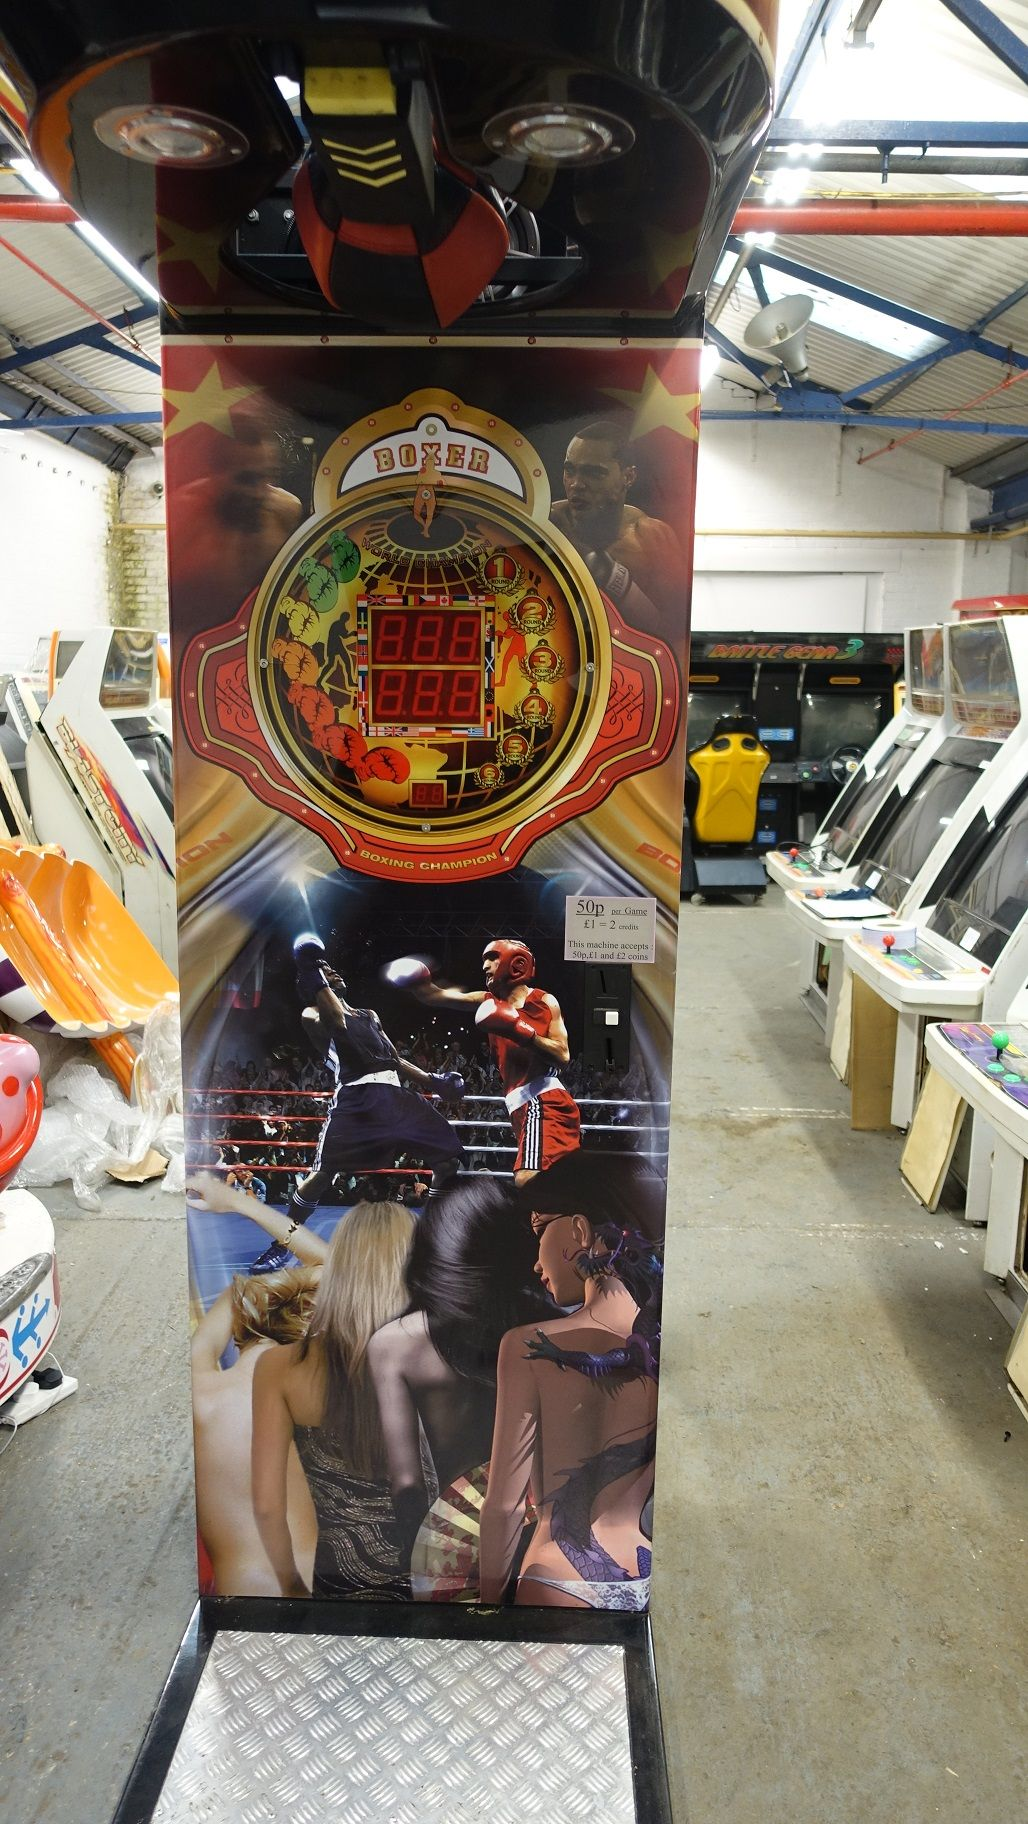 BOXER DELUXE CLASSIC ARCADE BOXER BOXING MACHINE ,MISSING MAIN MOTHERBOARD BOXERDELUXEMISSINGMAINMOTHERBOARD